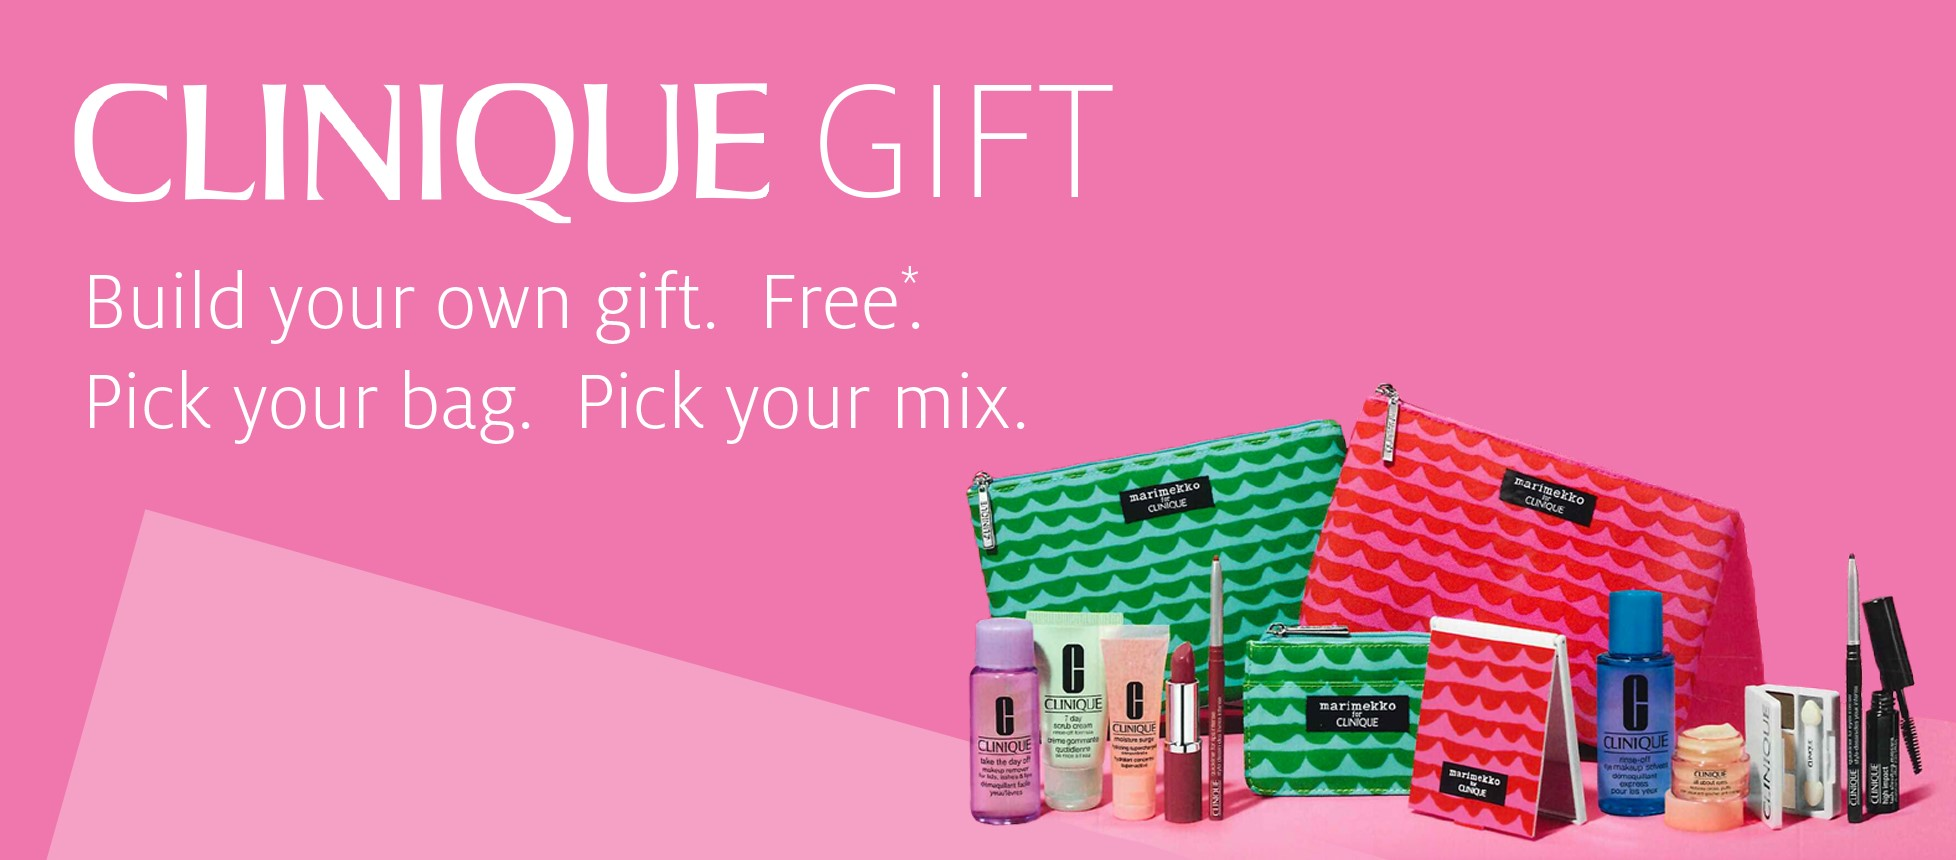 Clinique Gift: Pick Your Bag. Pick Your Mix